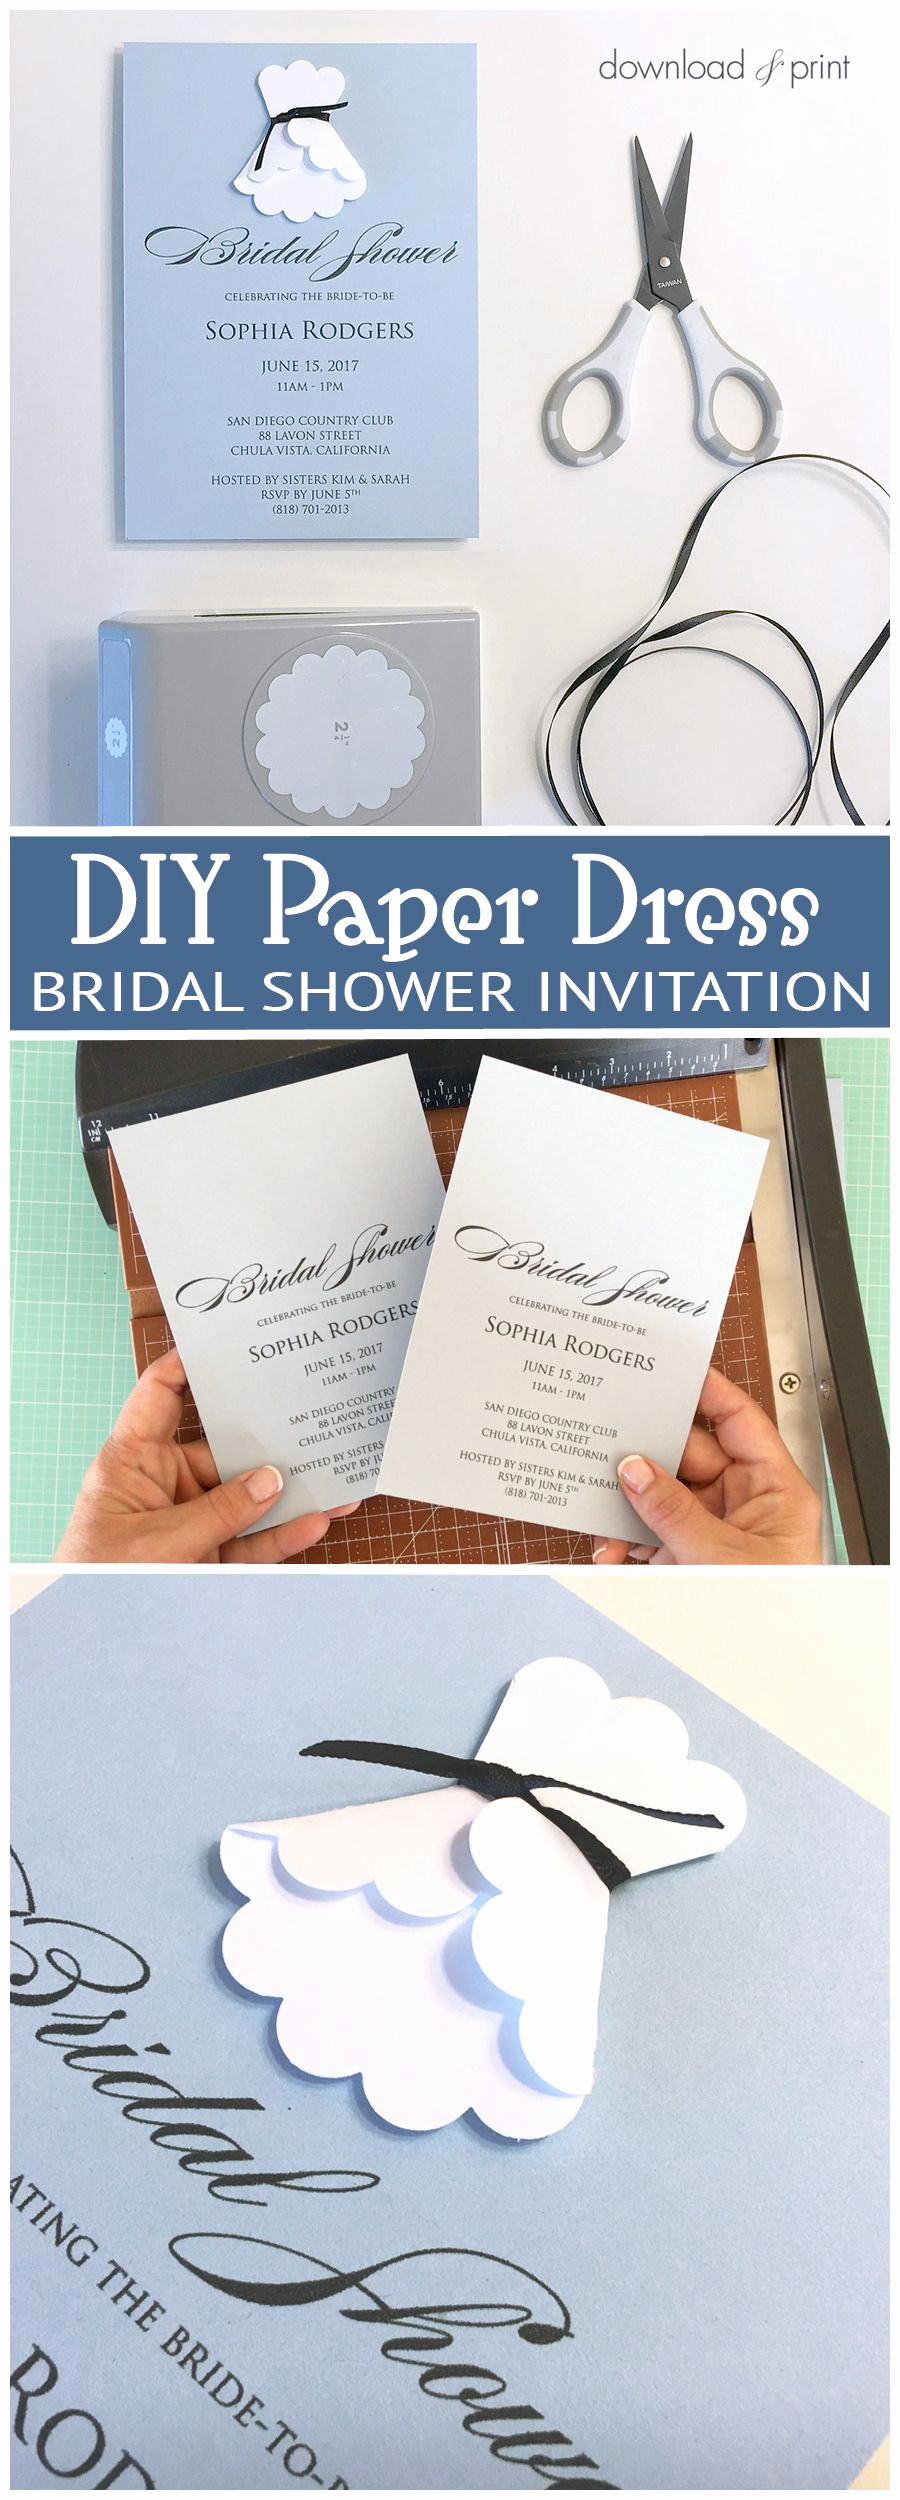 Diy Bridal Shower Invitation Templates Inspirational Sweet and Simple Bridal Shower Invitation with A Diy Paper